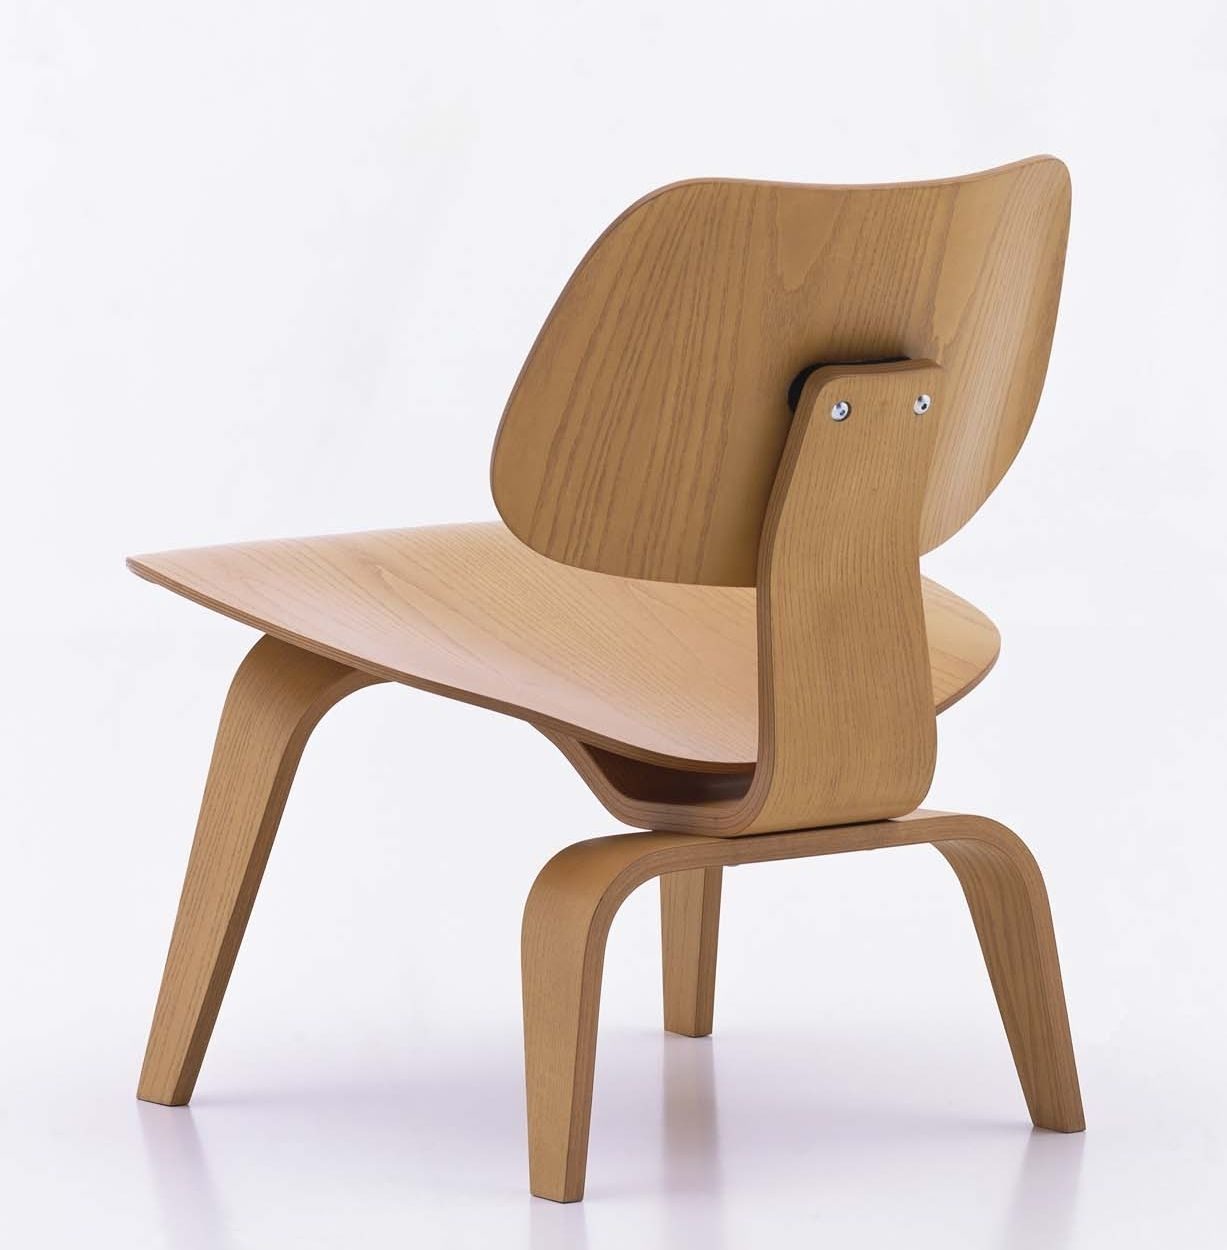 Design wood chair by Charles & Ray Eames - LCW - VITRA HOME